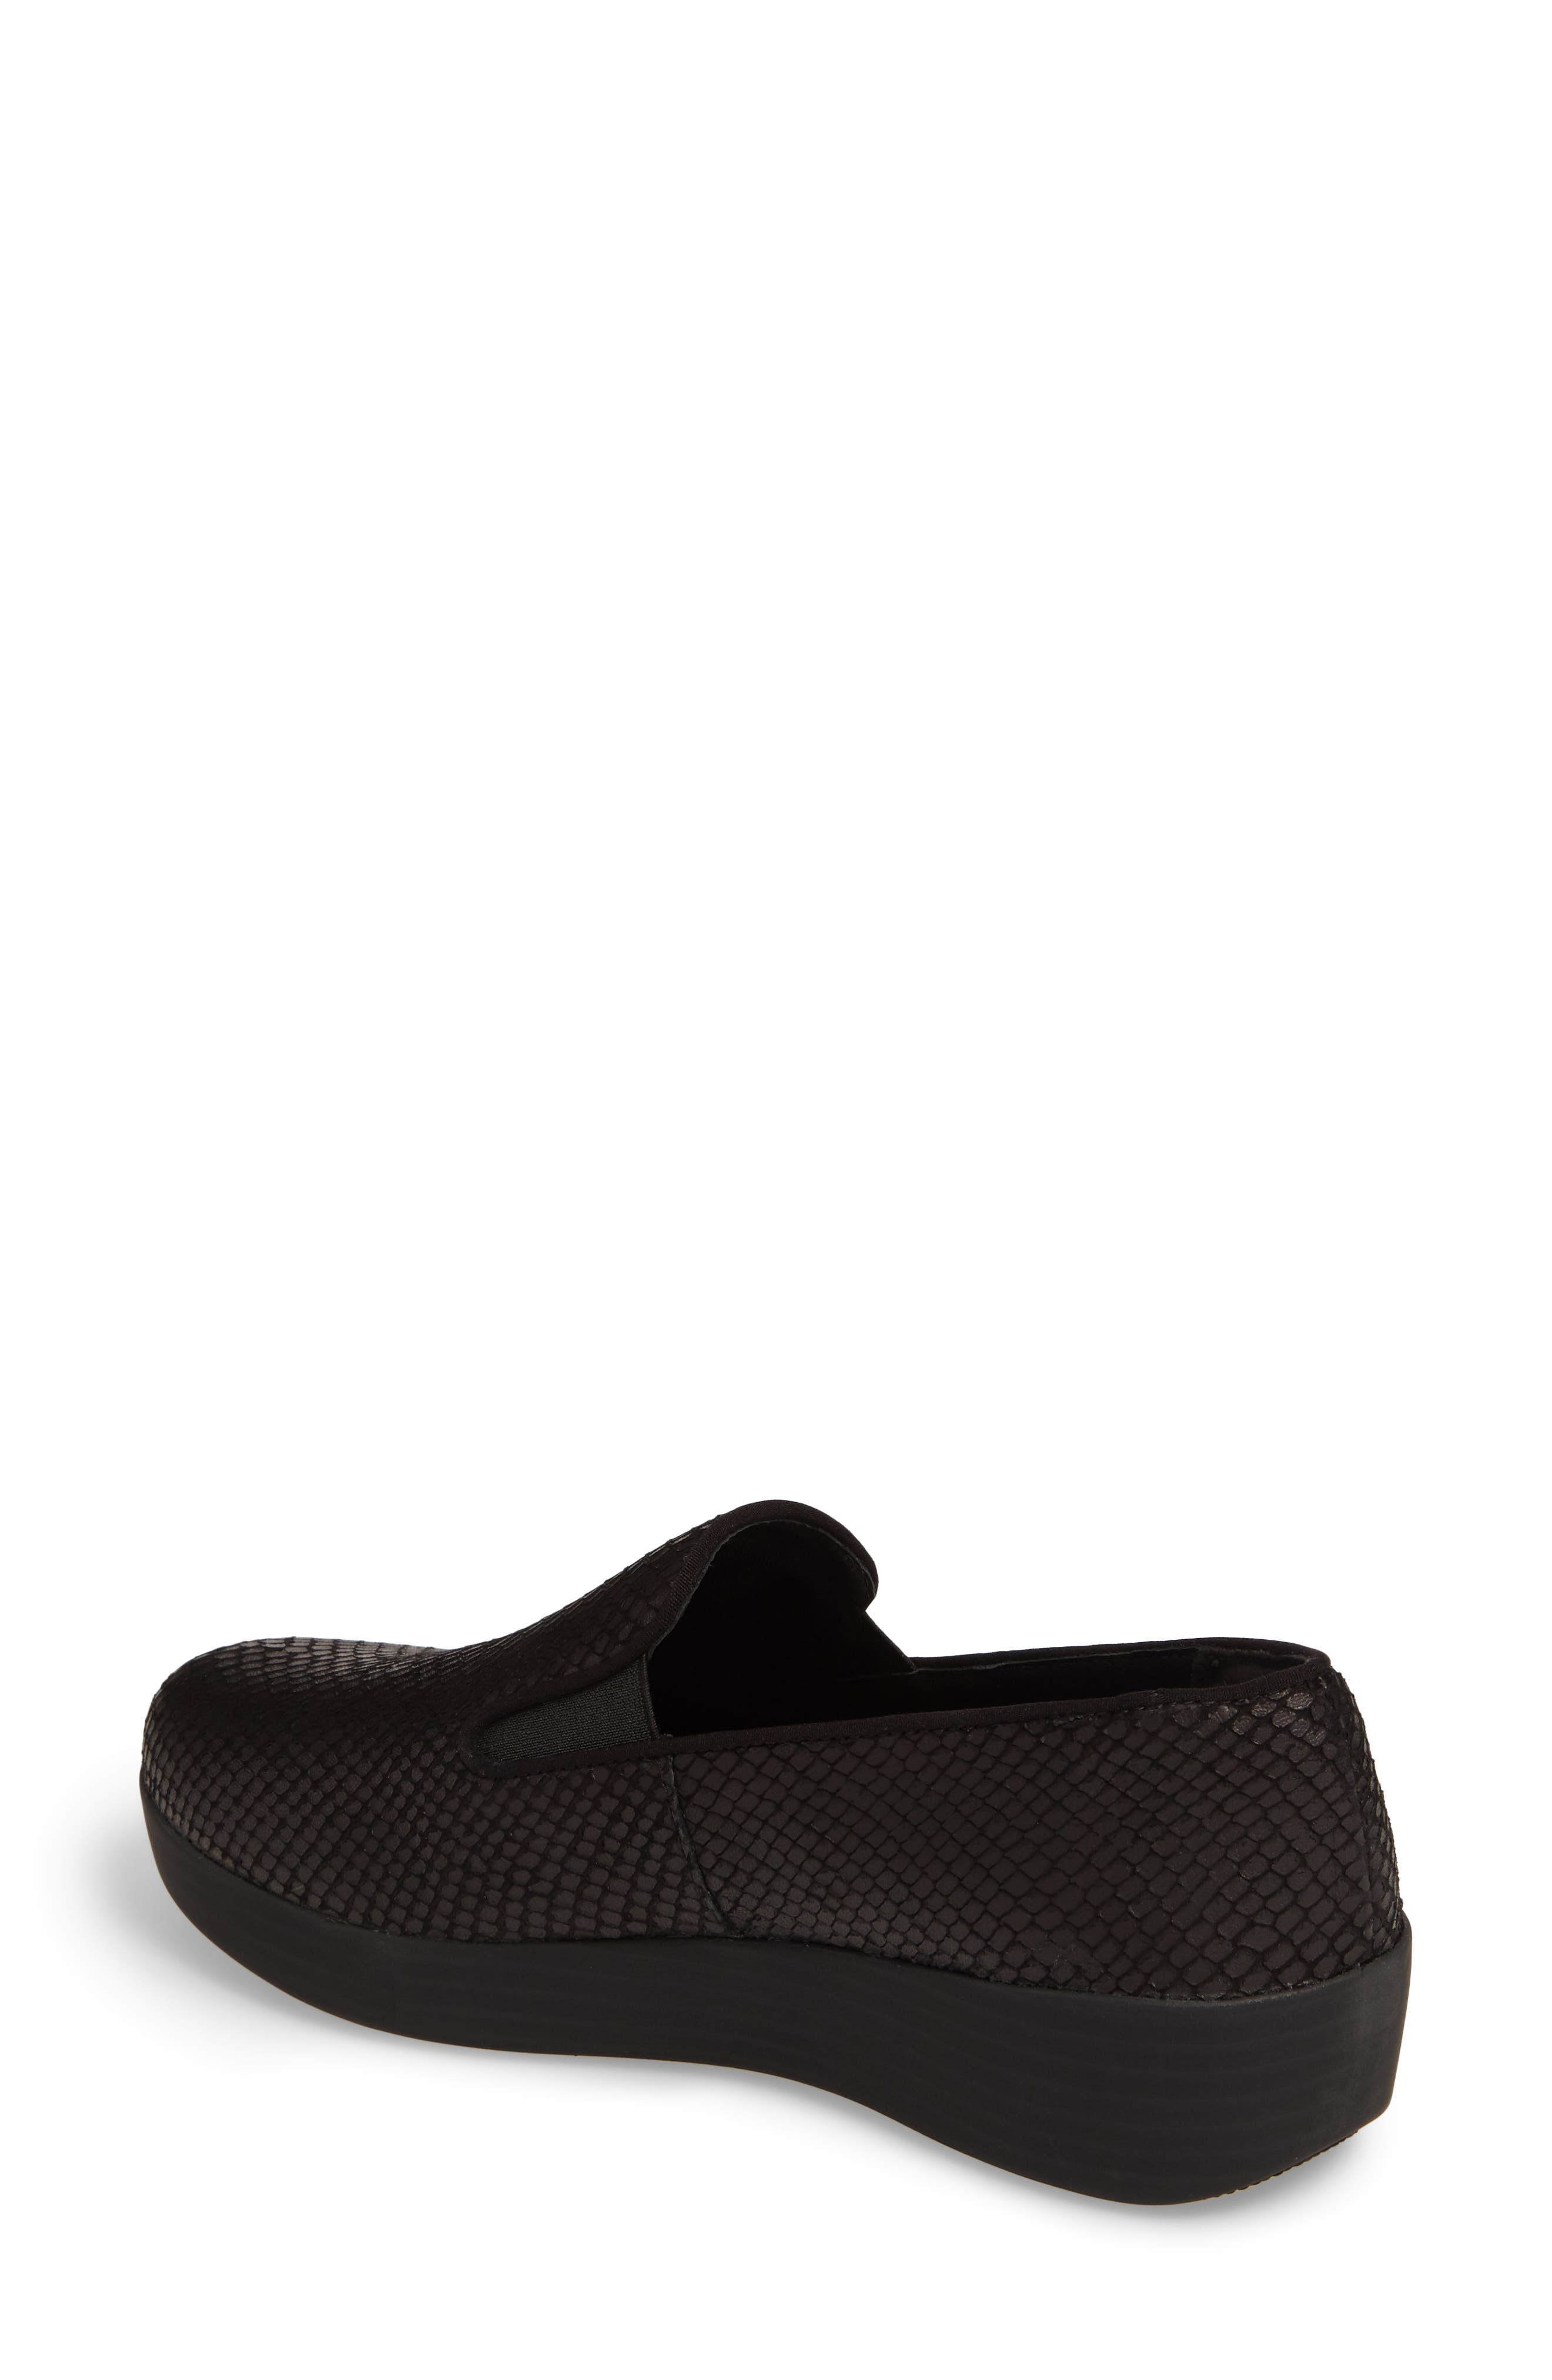 Superskate Slip-On,                             Alternate thumbnail 4, color,